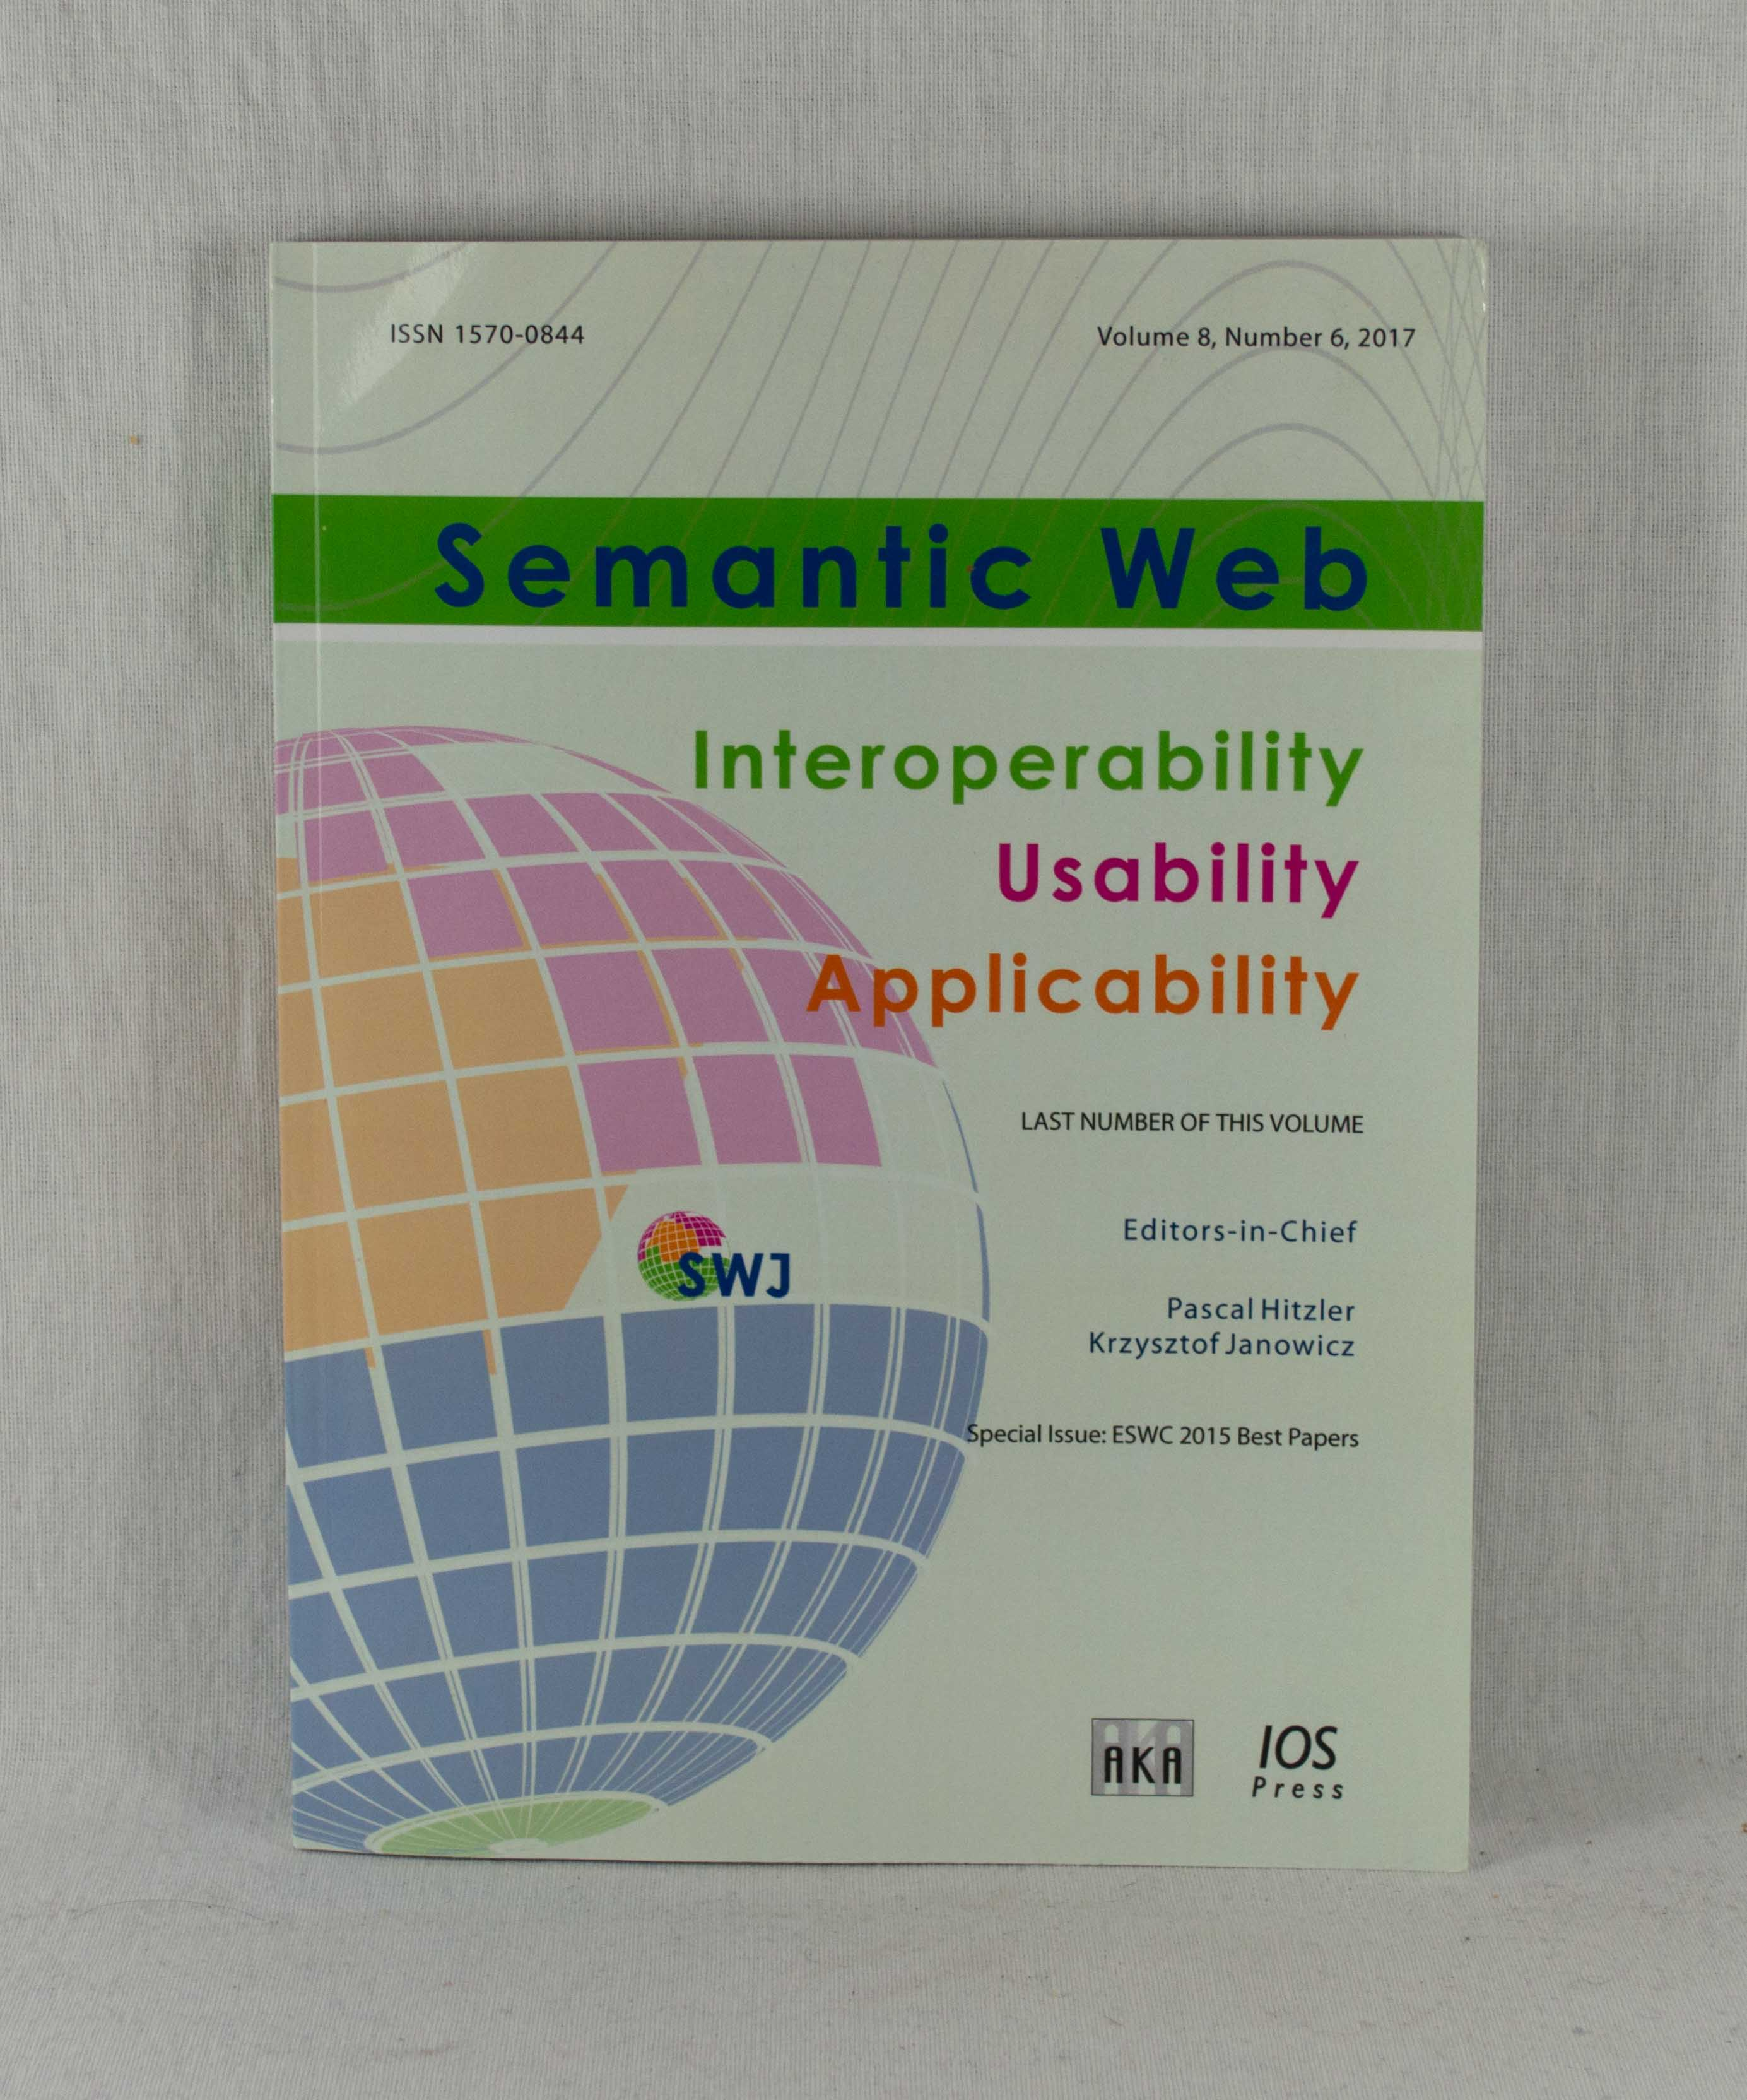 Semantic Web Journal: Interoperability - Usability - Applicability, Vol. 8 (2017), Number 6: Spezial Issue: ESWC 2015 Best Papers.